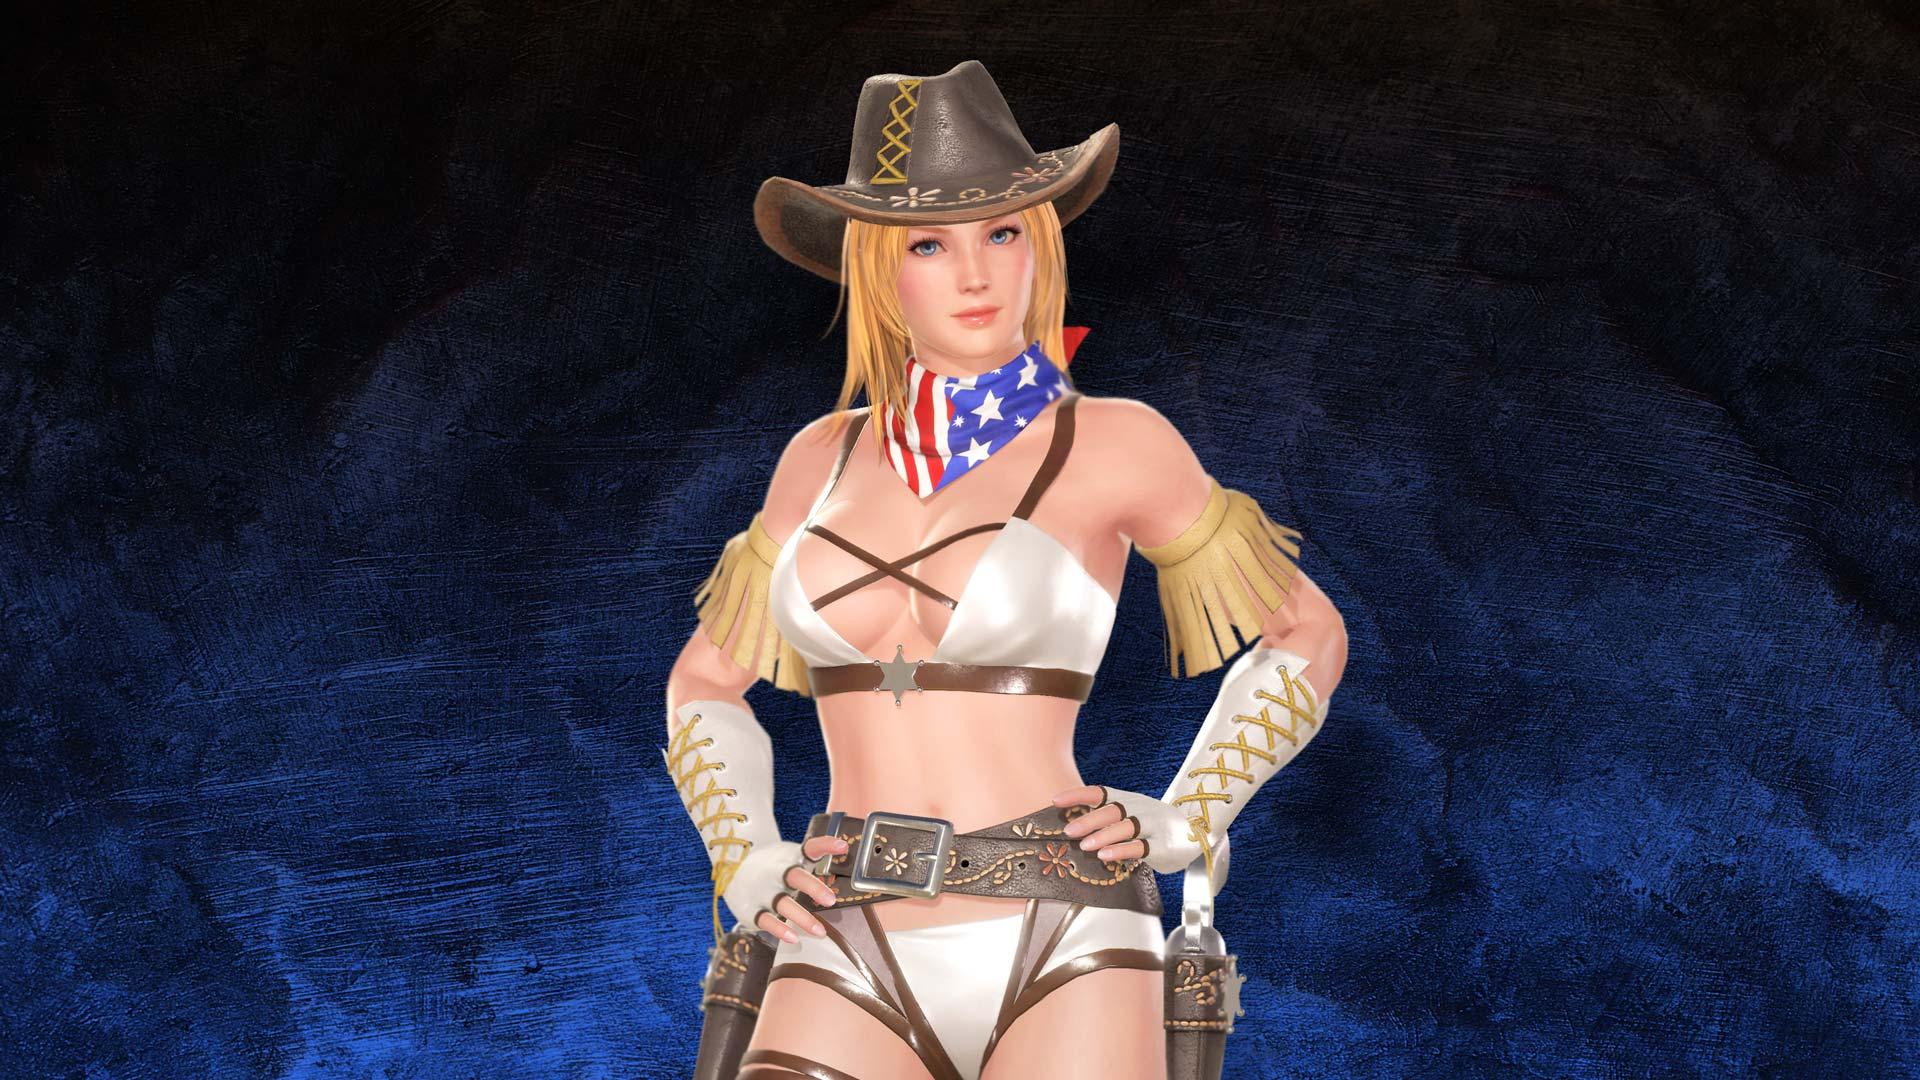 Dead Or Alive 6 Receives 25 New DLC Summer Costumes